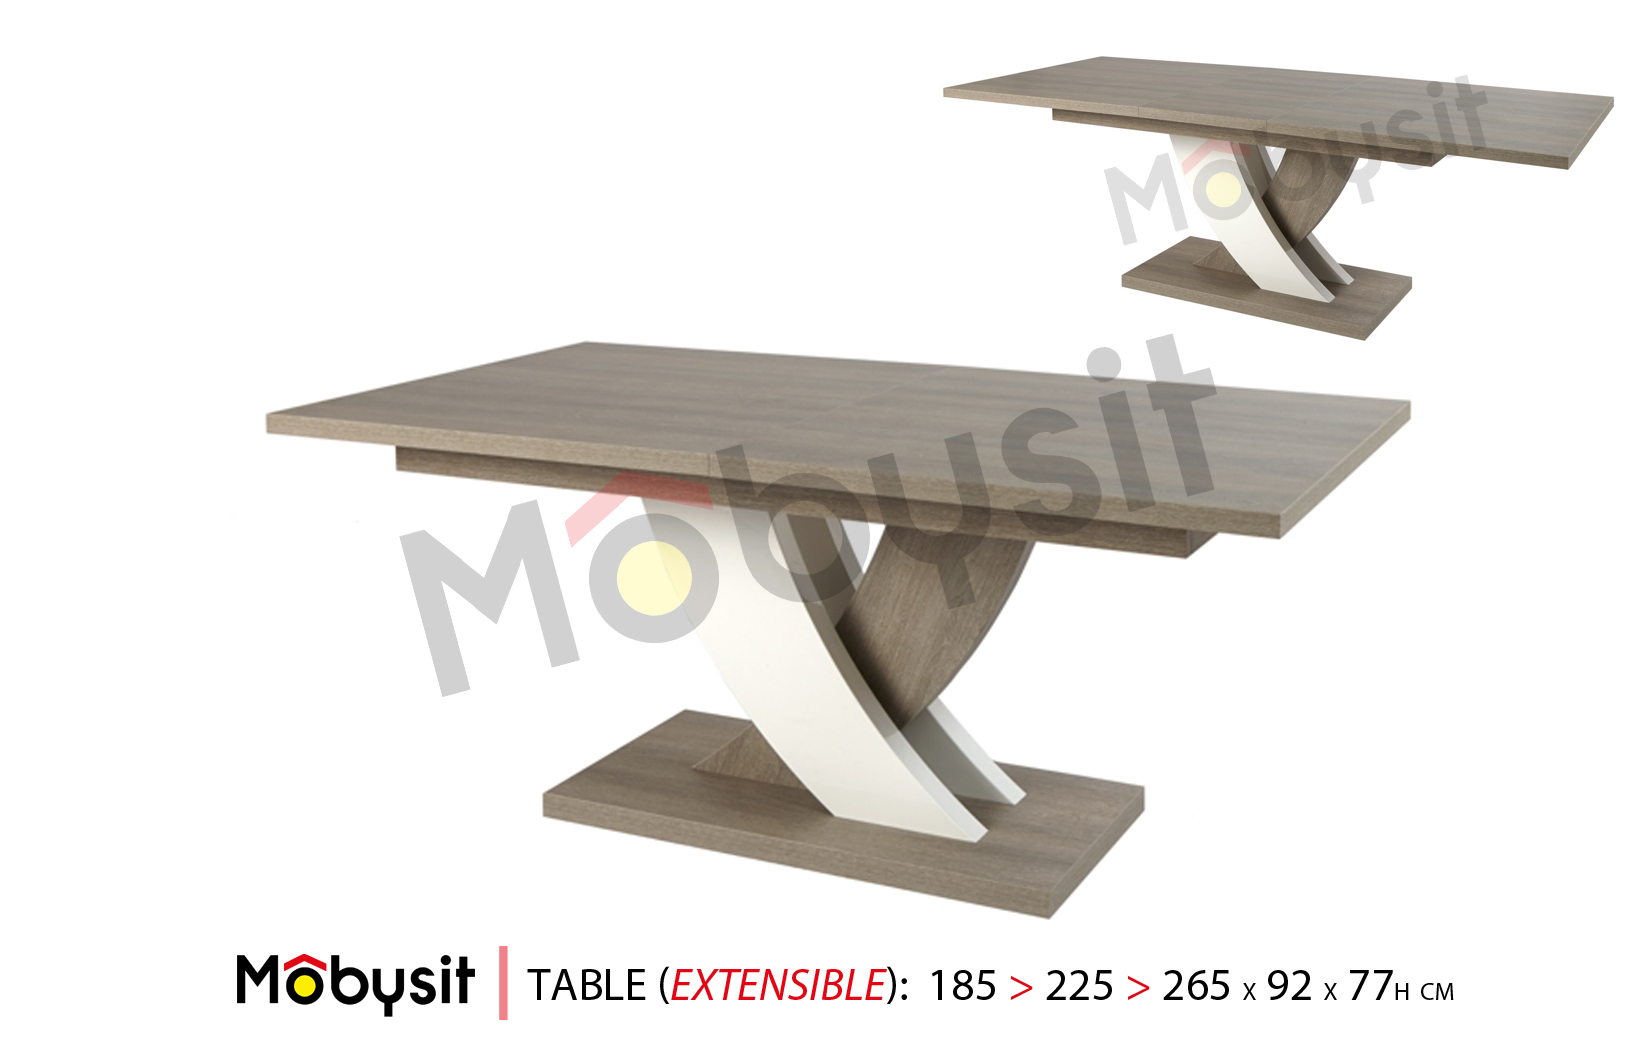 BIG Bauwens table extensible